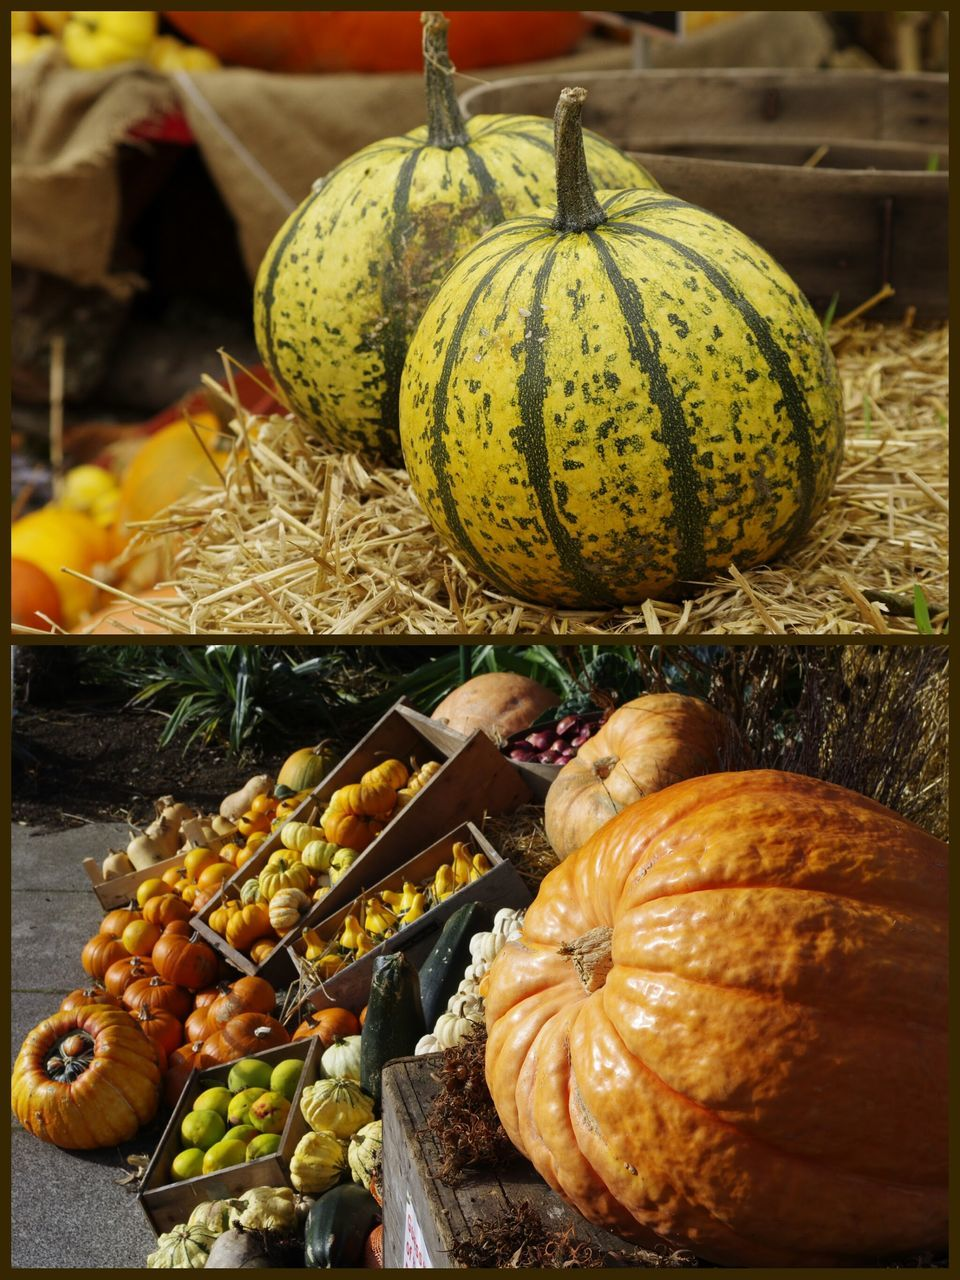 pumpkin, food and drink, food, vegetable, gourd, healthy eating, freshness, no people, squash - vegetable, fruit, day, halloween, outdoors, close-up